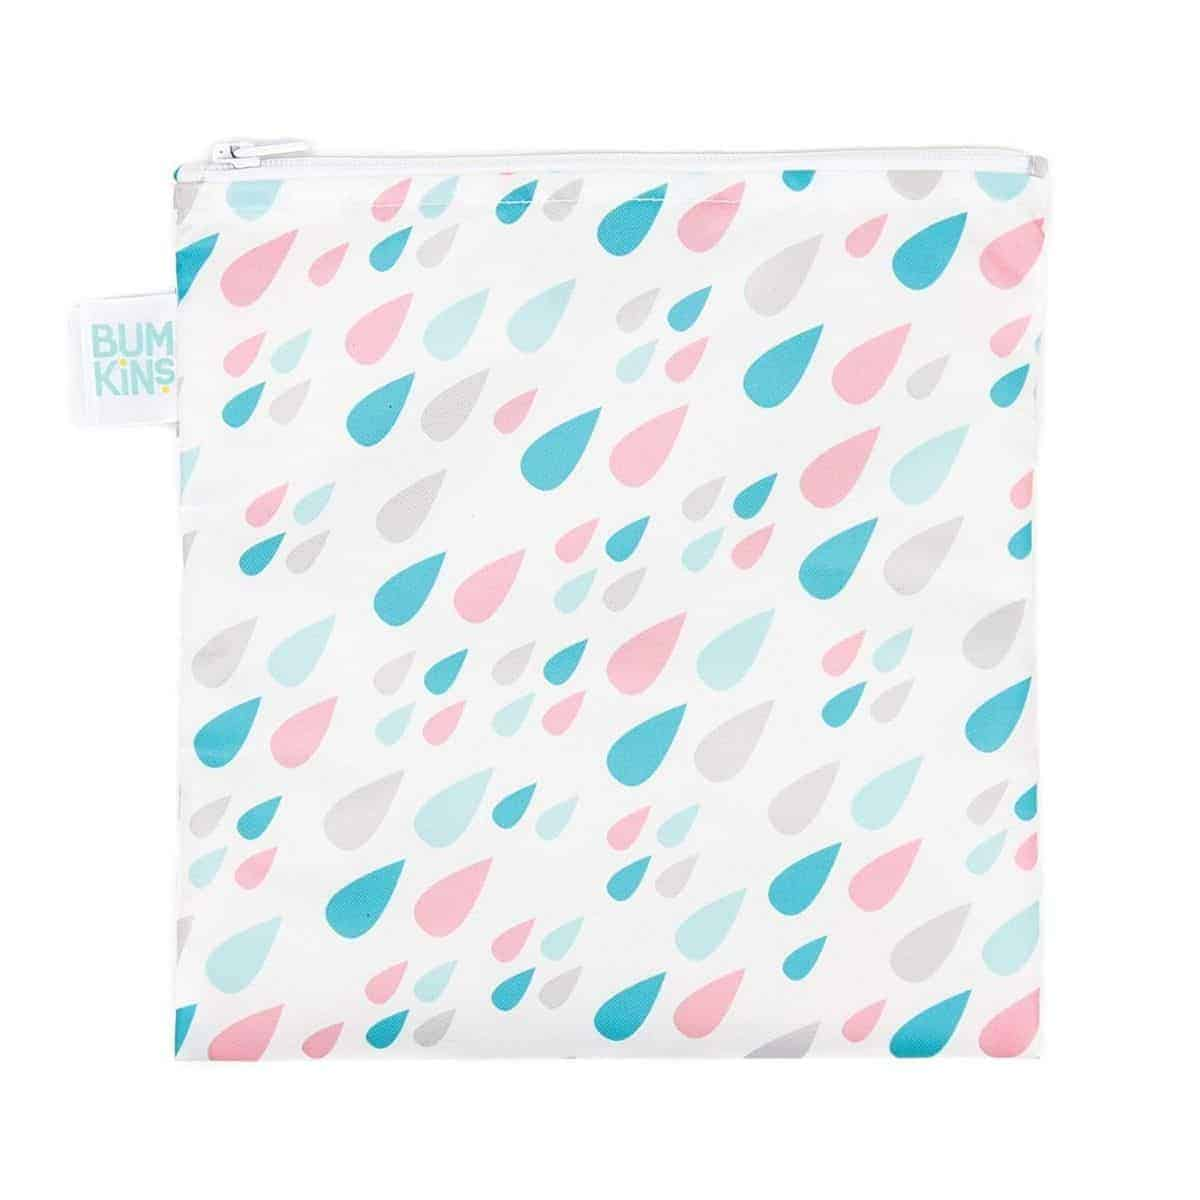 Reusable sandwich bag with pink and blue rain drops on it.